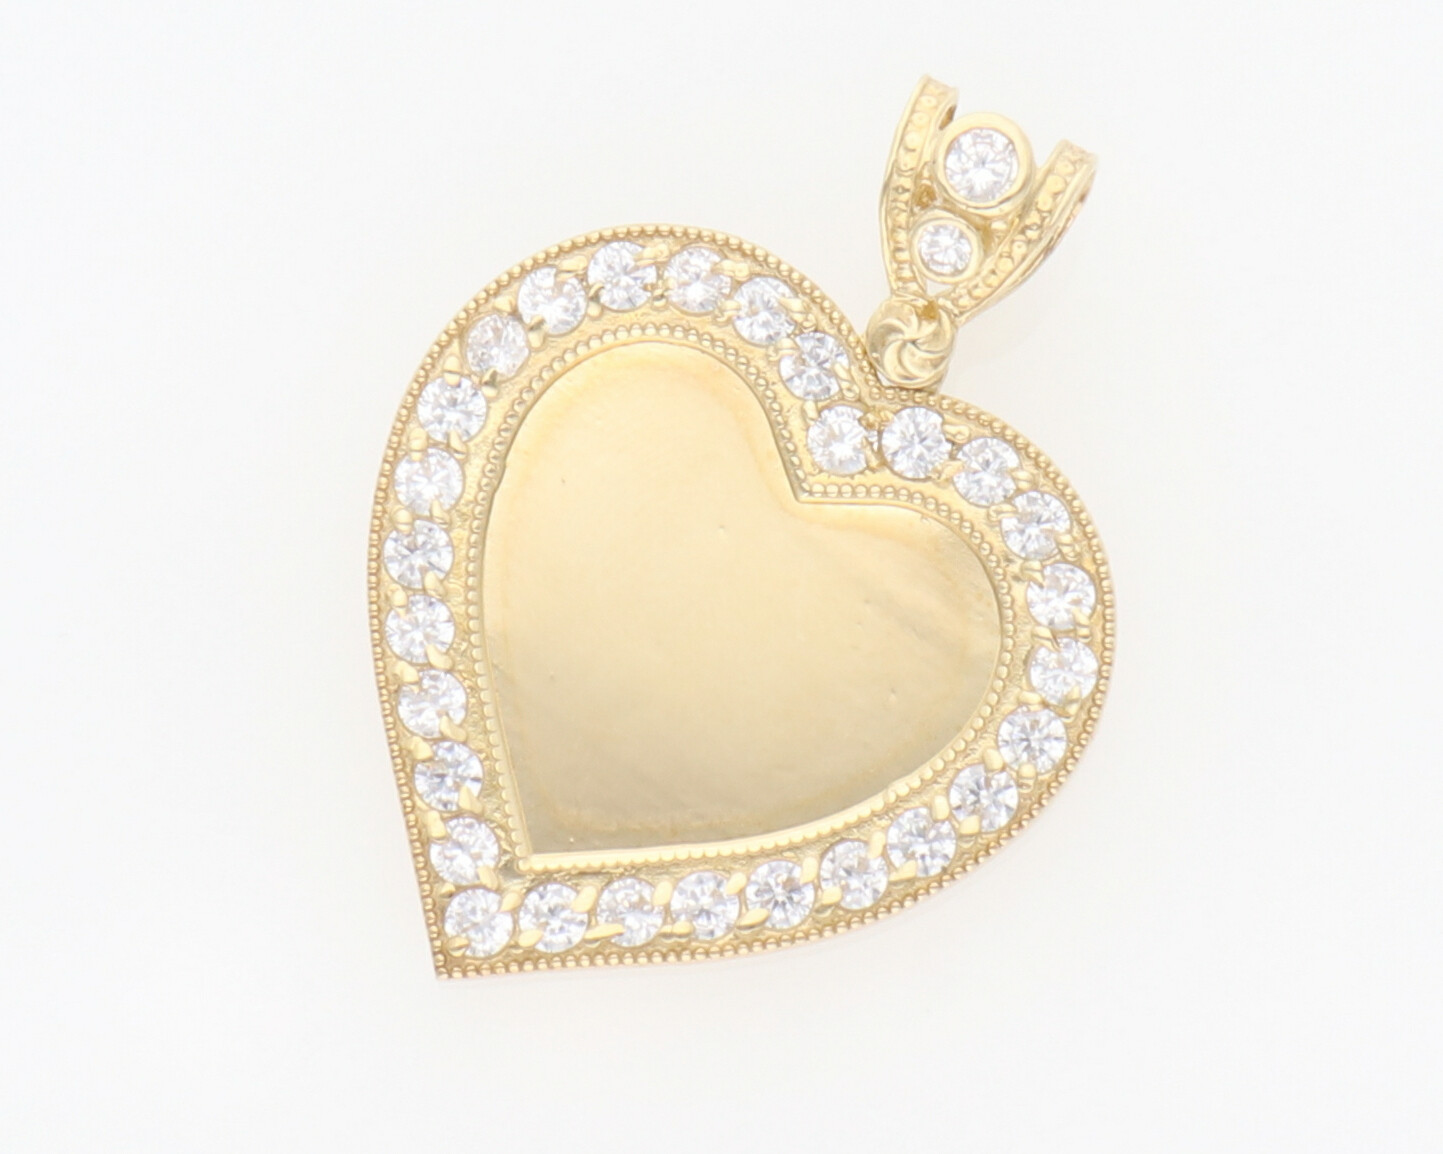 10 Karat Gold & Zirconium Photo Heart Medal